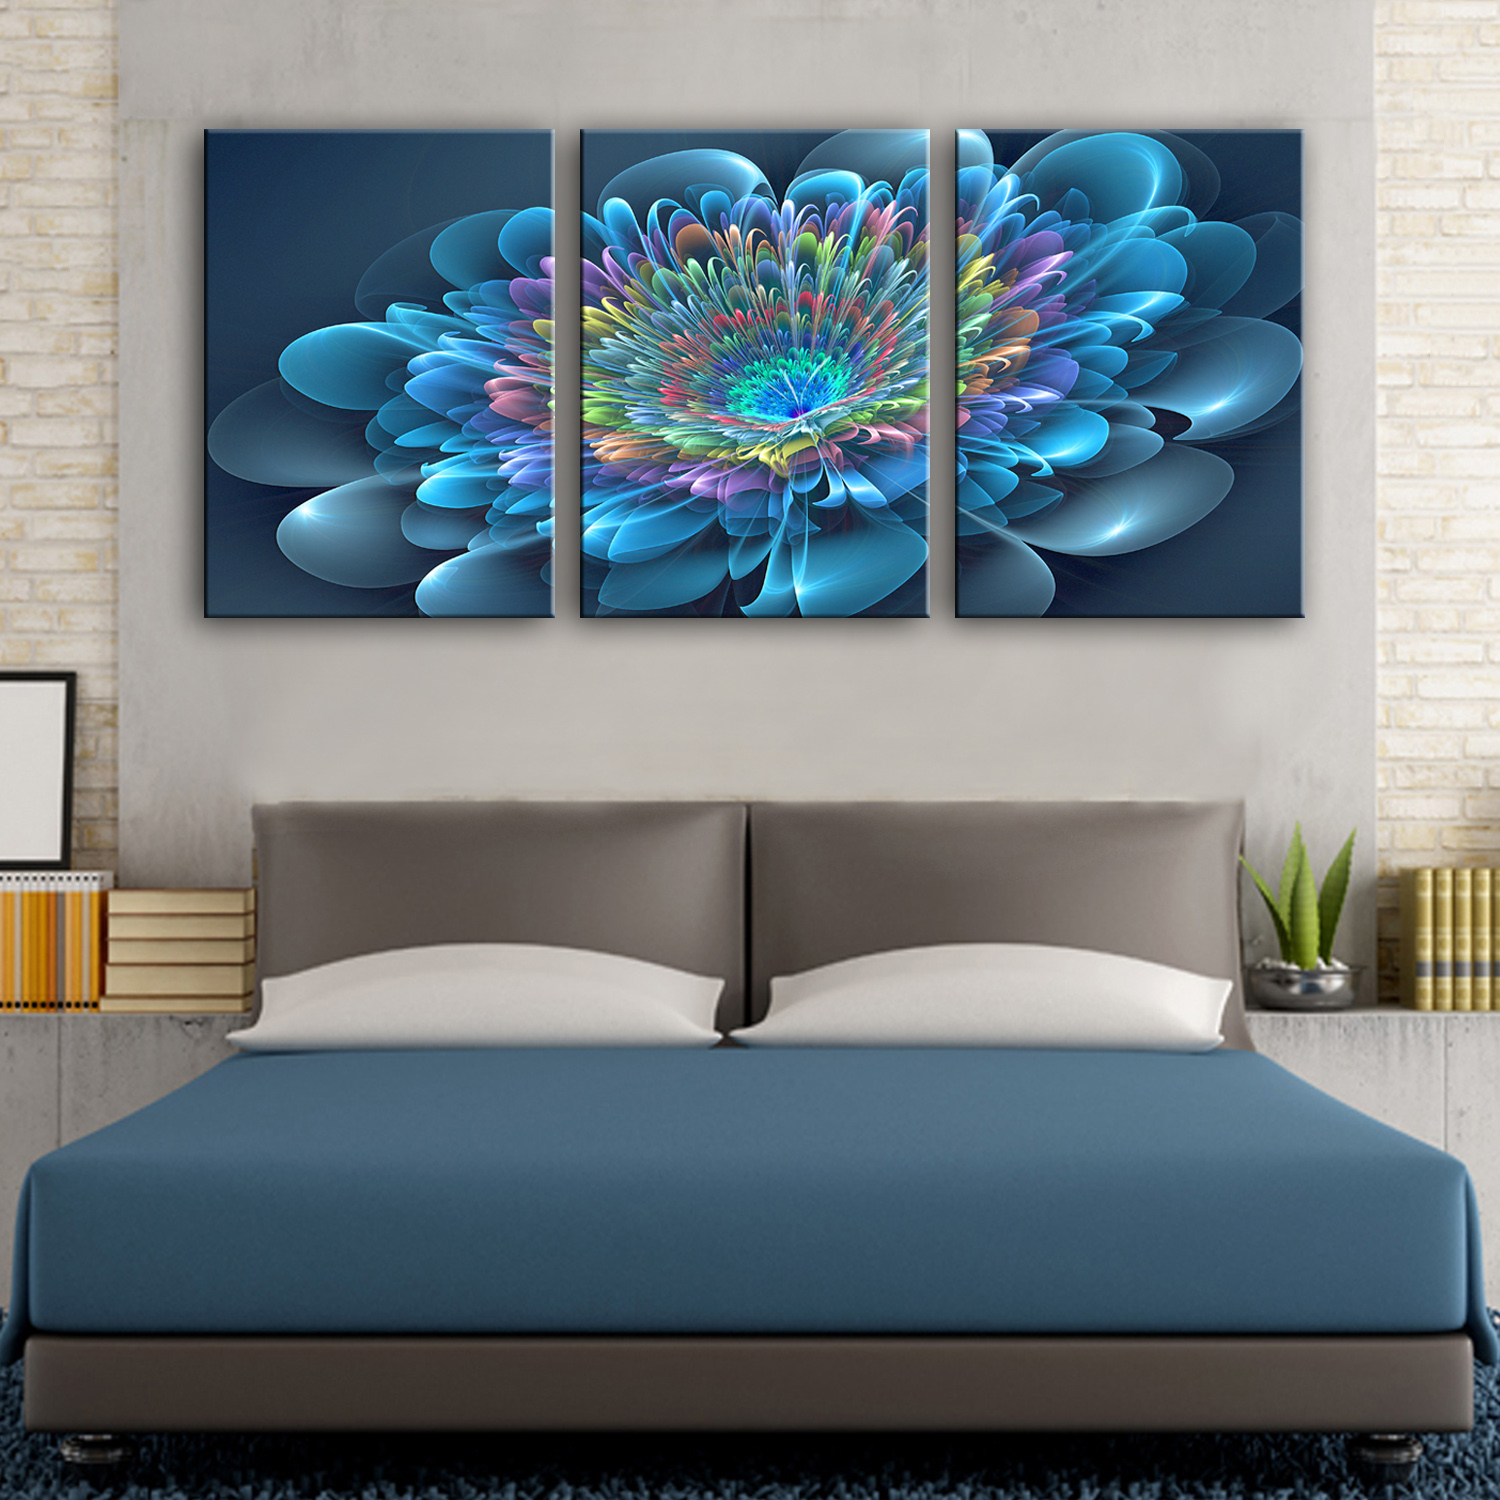 Us 5 93 40 Off Drop Shipping Colorful Wall Paintings Wall Art Canvas Prints Home Decor Living Room Modular 3 Pieces Canvas Art Flower Pictures In